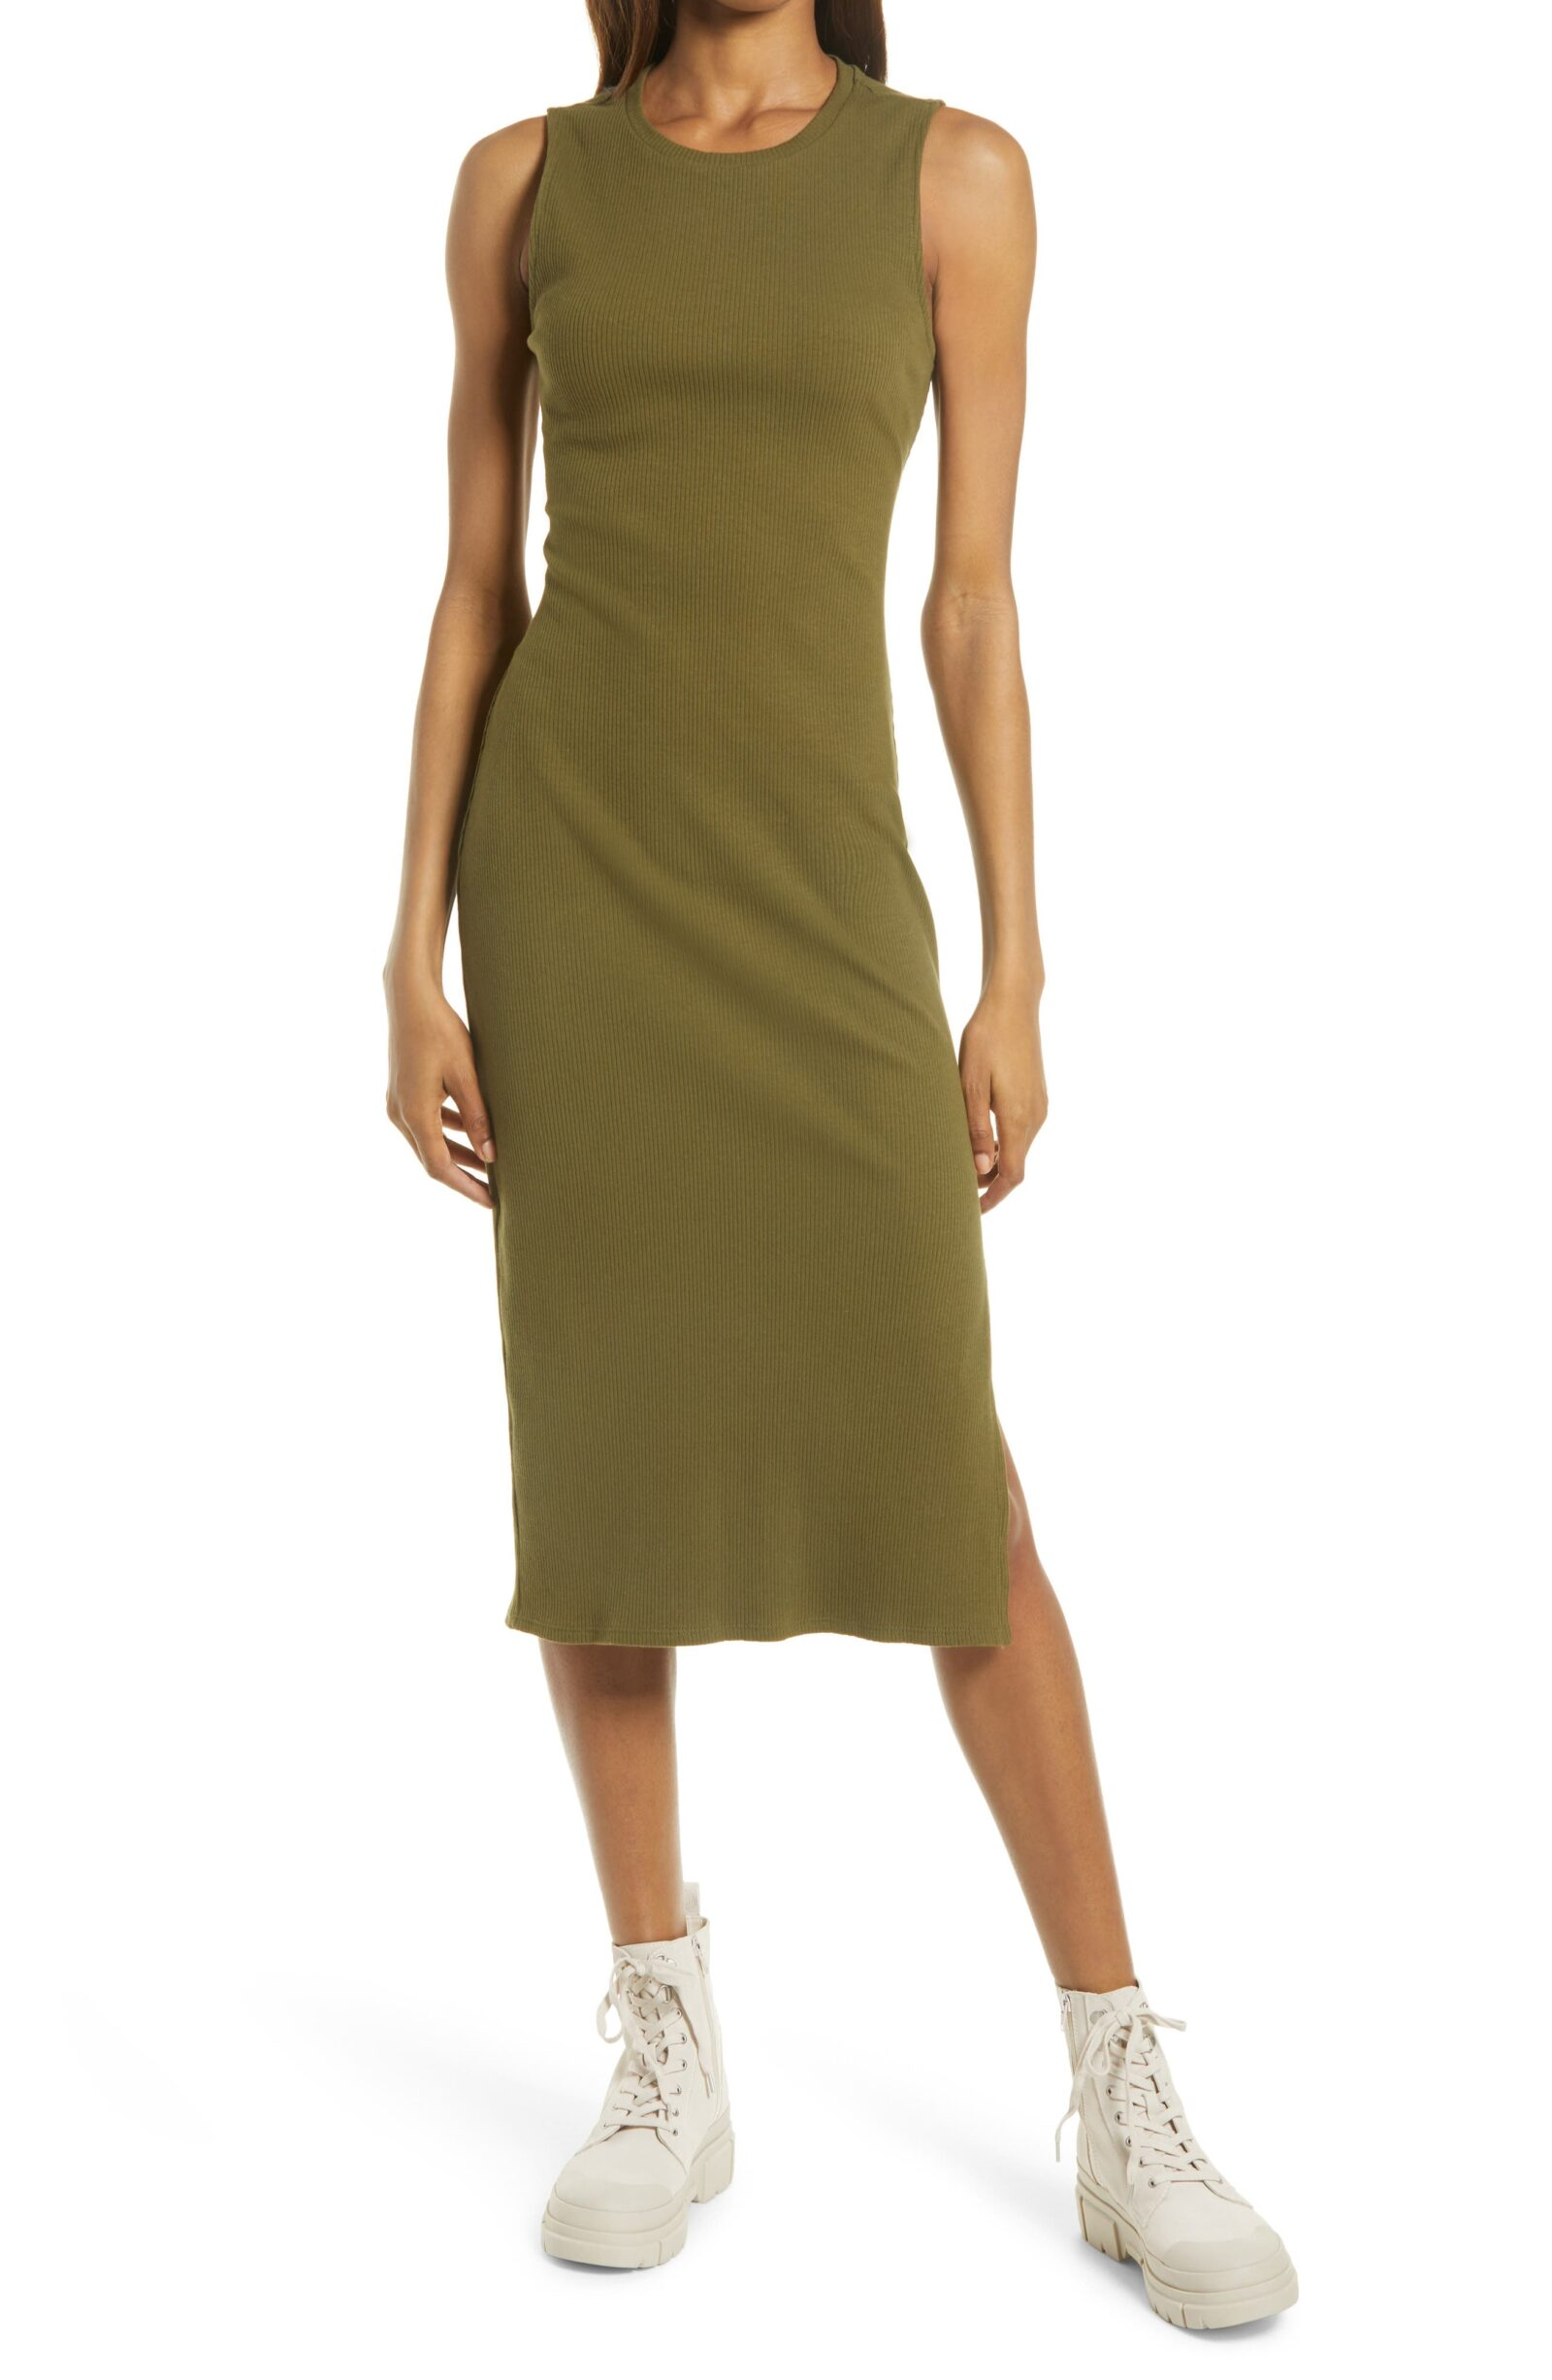 Dress From Nordstrom Anniversary Sale 2021